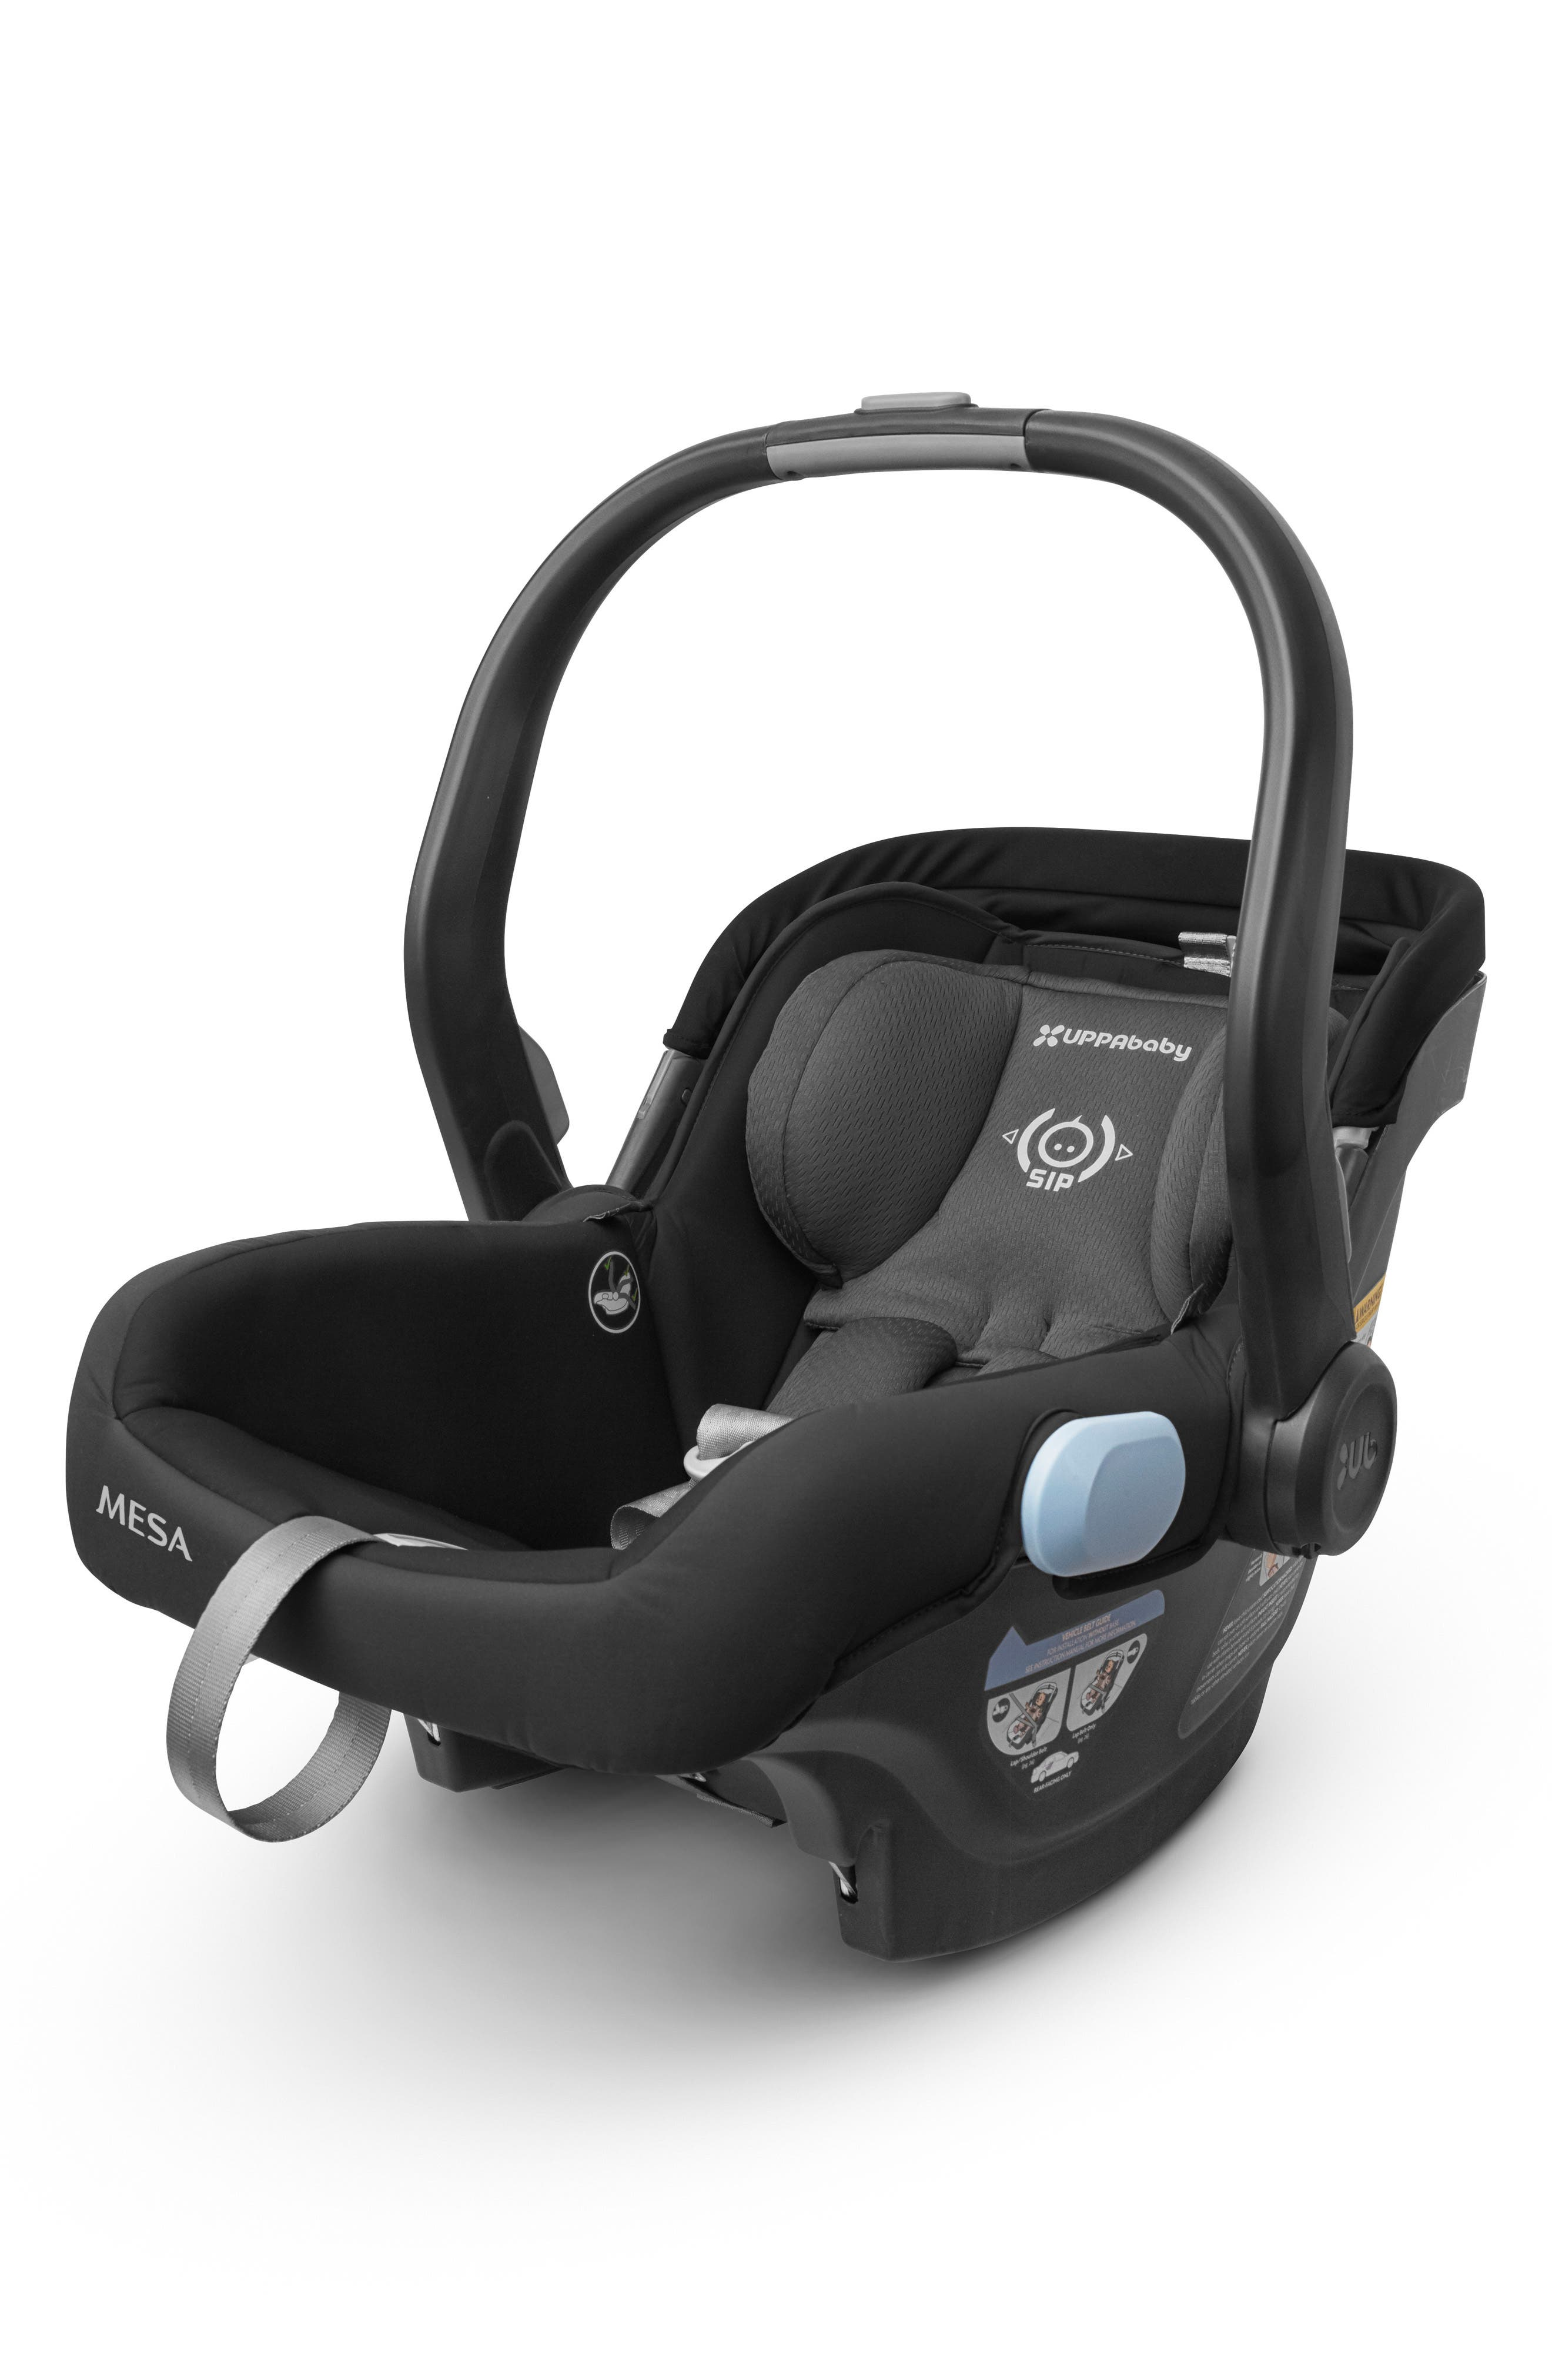 UPPABABY,                             2017 MESA Infant Car Seat,                             Alternate thumbnail 2, color,                             BLACK